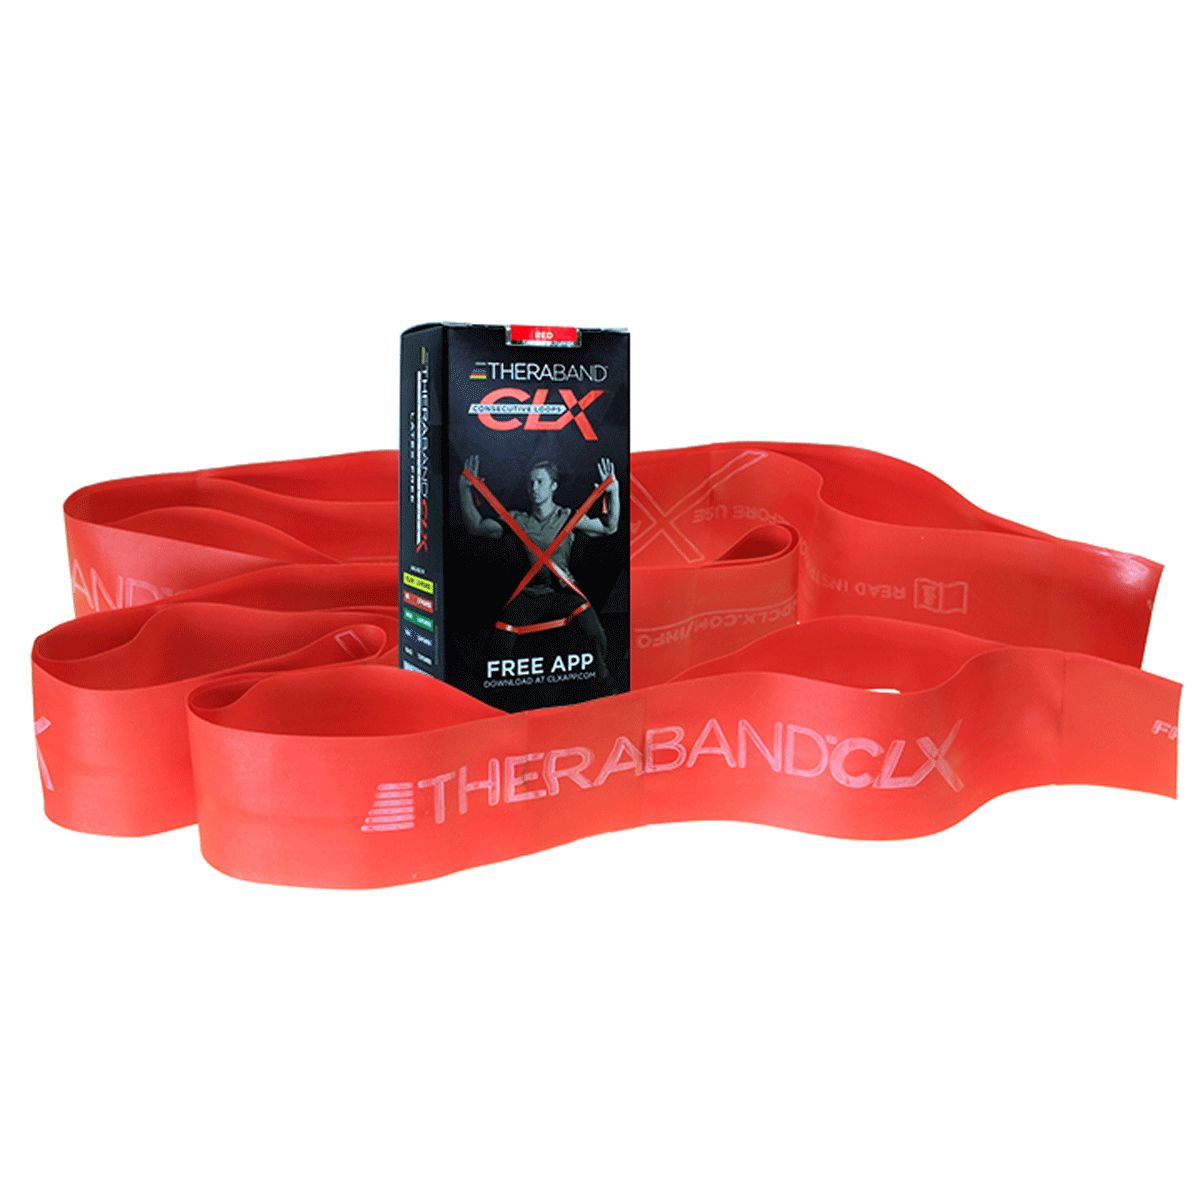 Red TheraBand CLX Resistance Band Loop with product box